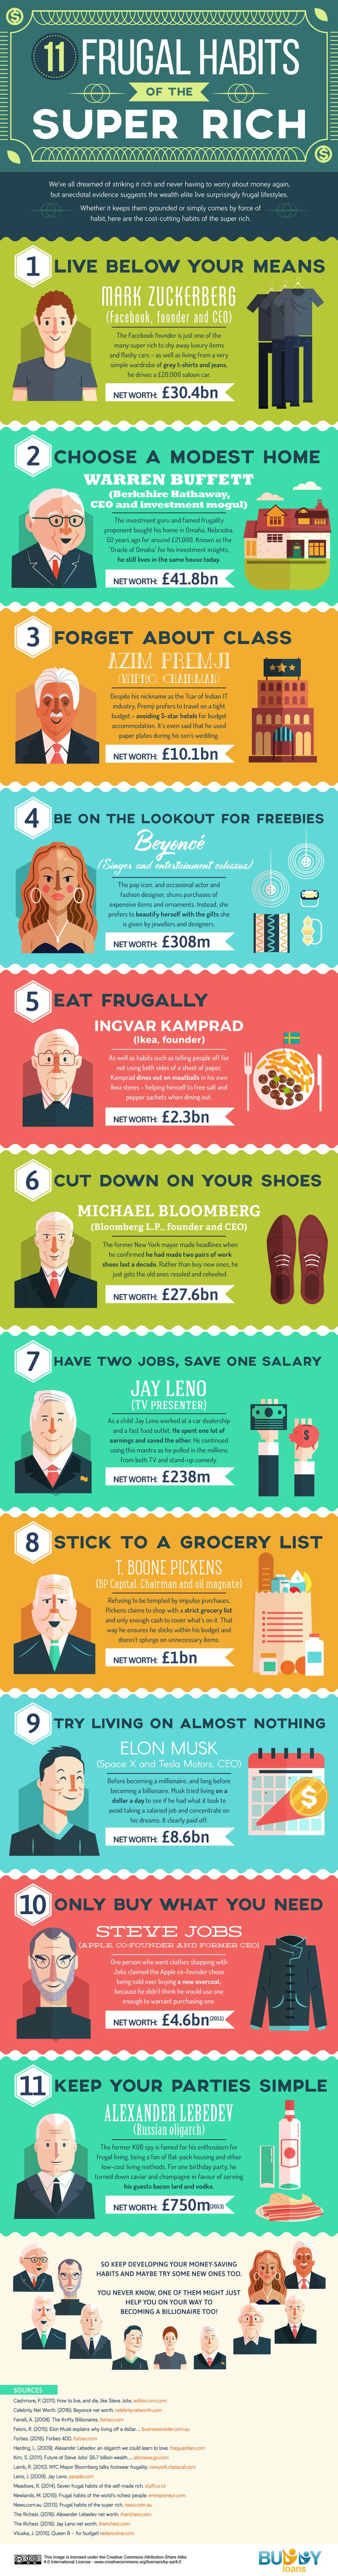 11 frugal habits of the super rich #infographic #Entrepreneur #SuccessStories